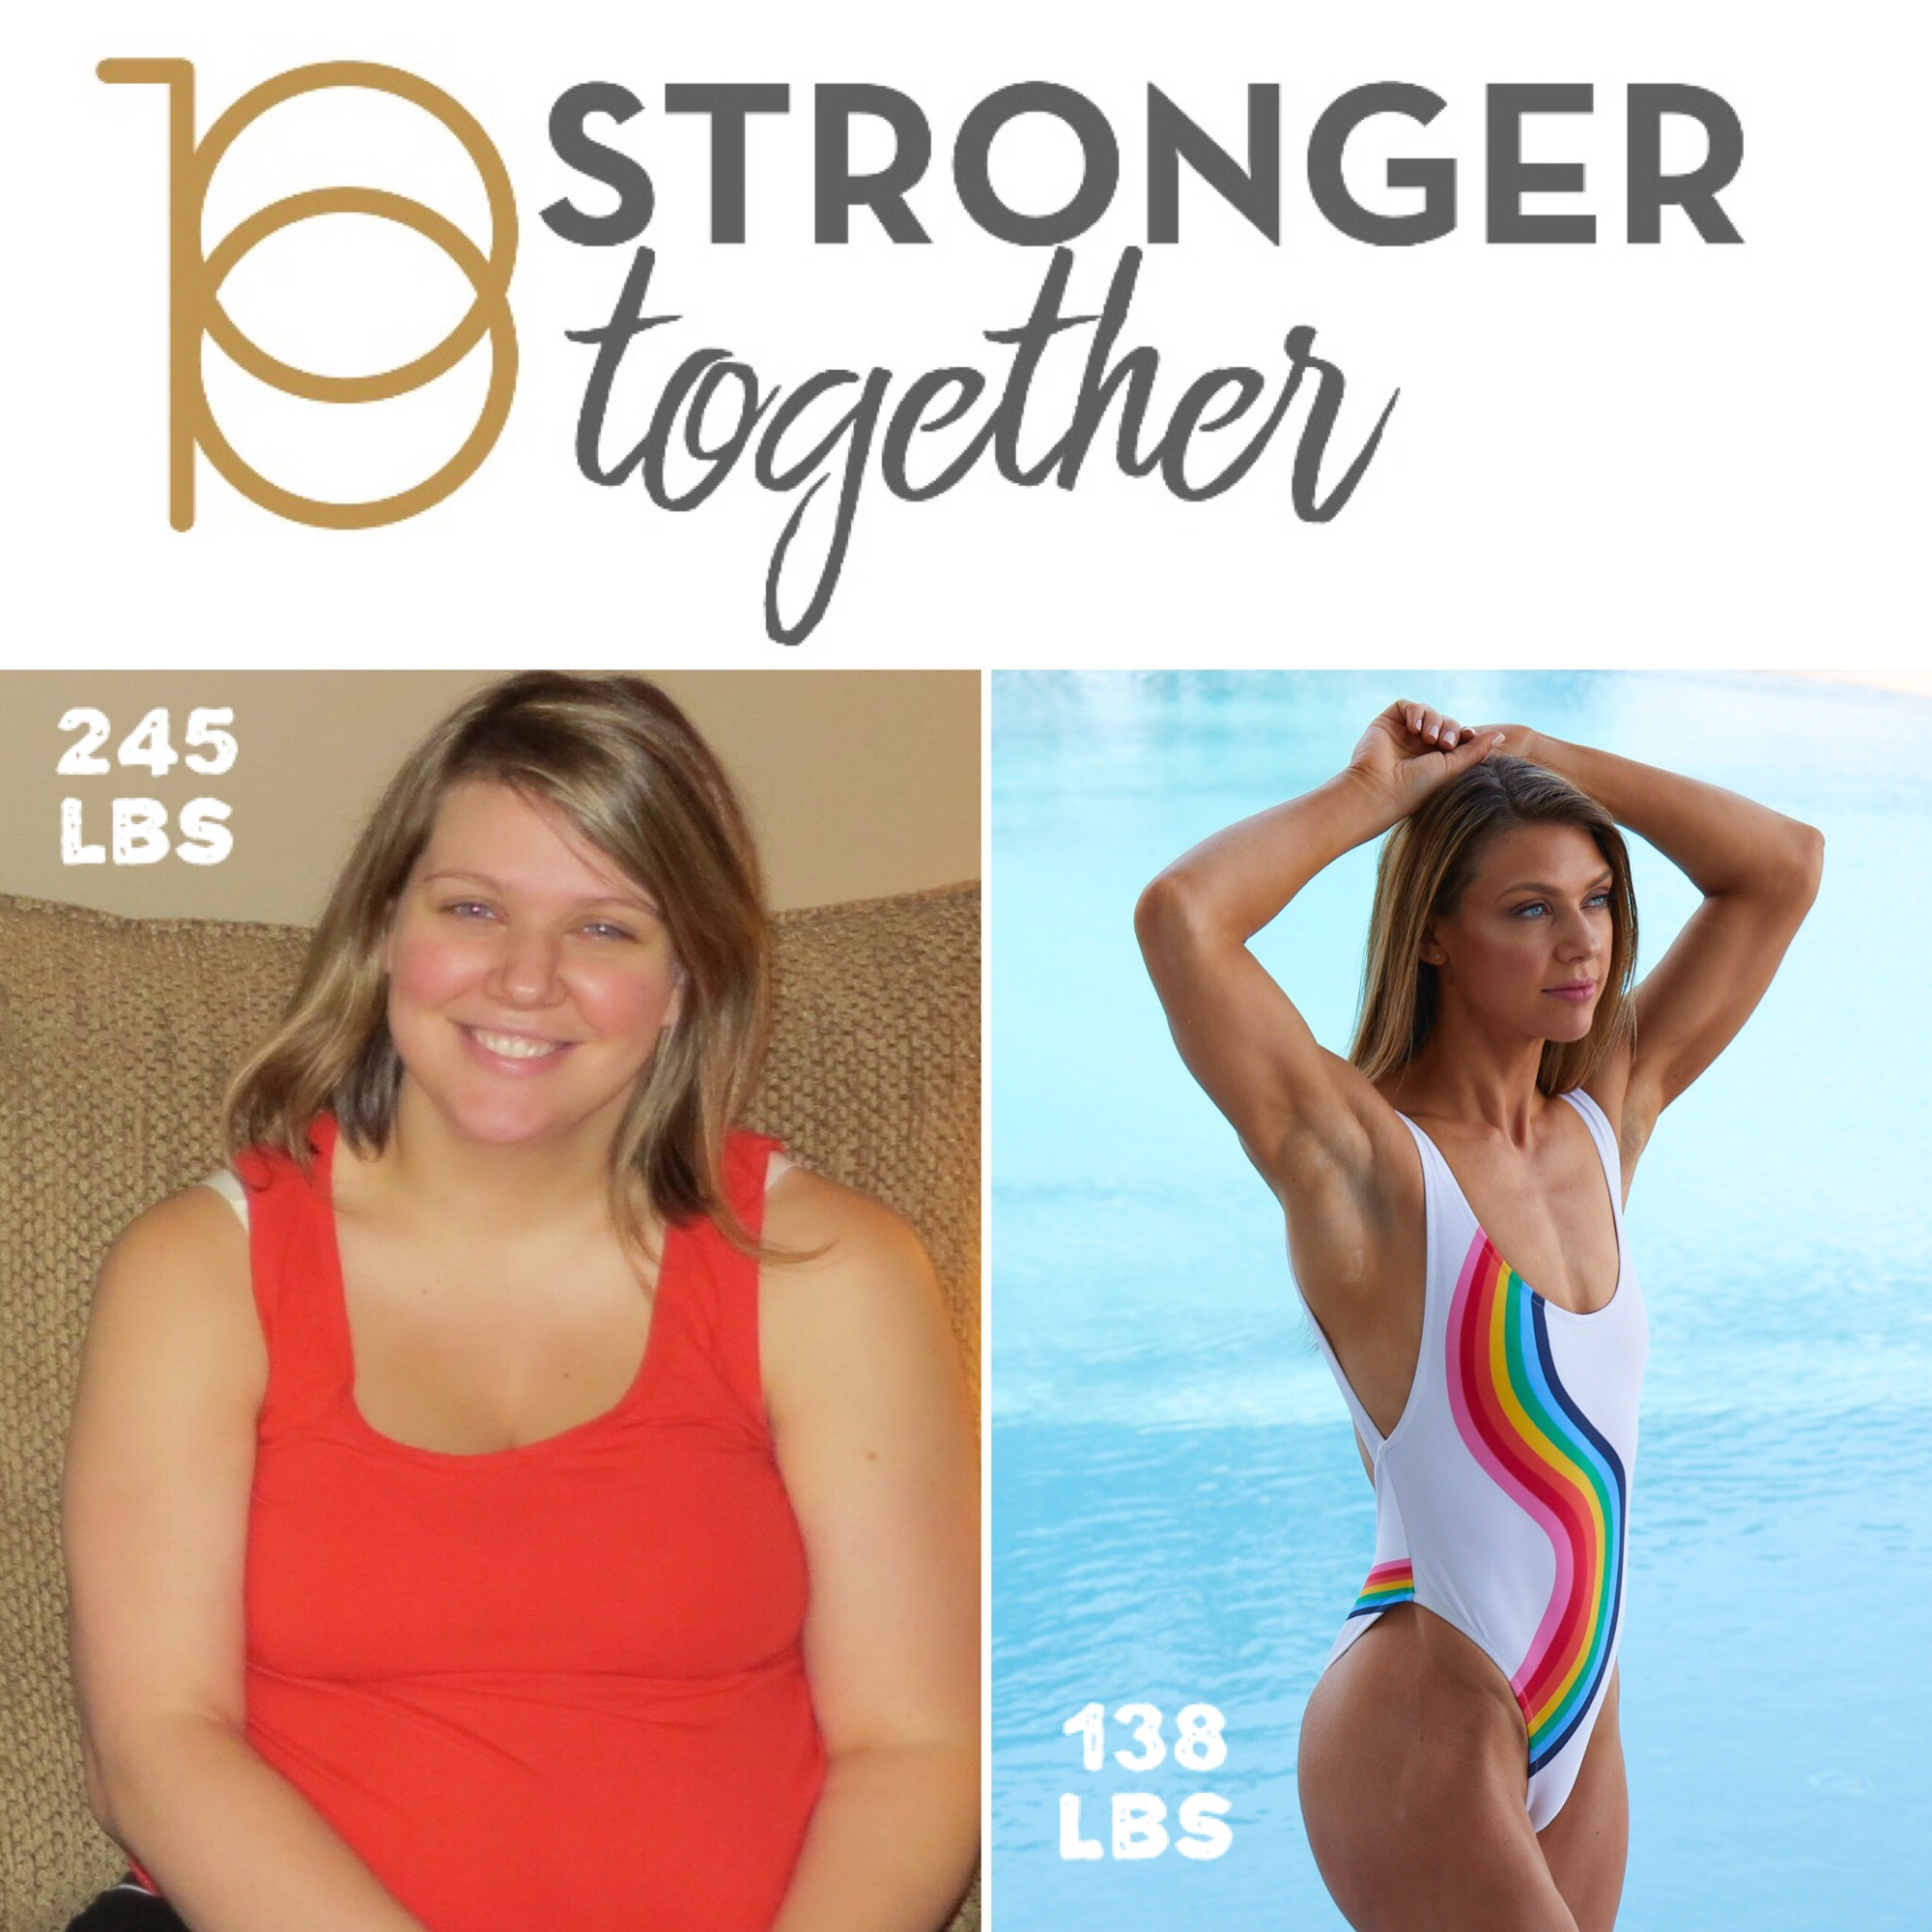 - TONIGHT at 7:00pm CST, I will be going LIVE in my B STRONGER TOGETHER Membership Community for our monthly Q&A session!Ask me all of your mindset, healthy habit, nutrition and workout questions in this interactive session for only $9/month AND receive EXCLUSIVE CONTENT:+ MONTHLY FACEBOOK LIVE Q&A WITH BRIANNA+ FACEBOOK LIVE INTERVIEWS WITH REAL PEOPLE WHO SHARE THEIR WEIGHT LOSS JOURNEYS & SUCCESS STORIES+ INTERACTIVE ASSIGNMENTS TO BUILD YOUR MENTAL STRENGTH+ BRIANNA'S FULL WORKOUTS+ HEALTHY RECIPESCan't wait to see you all TONIGHT at 7:00pm CST for this LIVE Q&A!